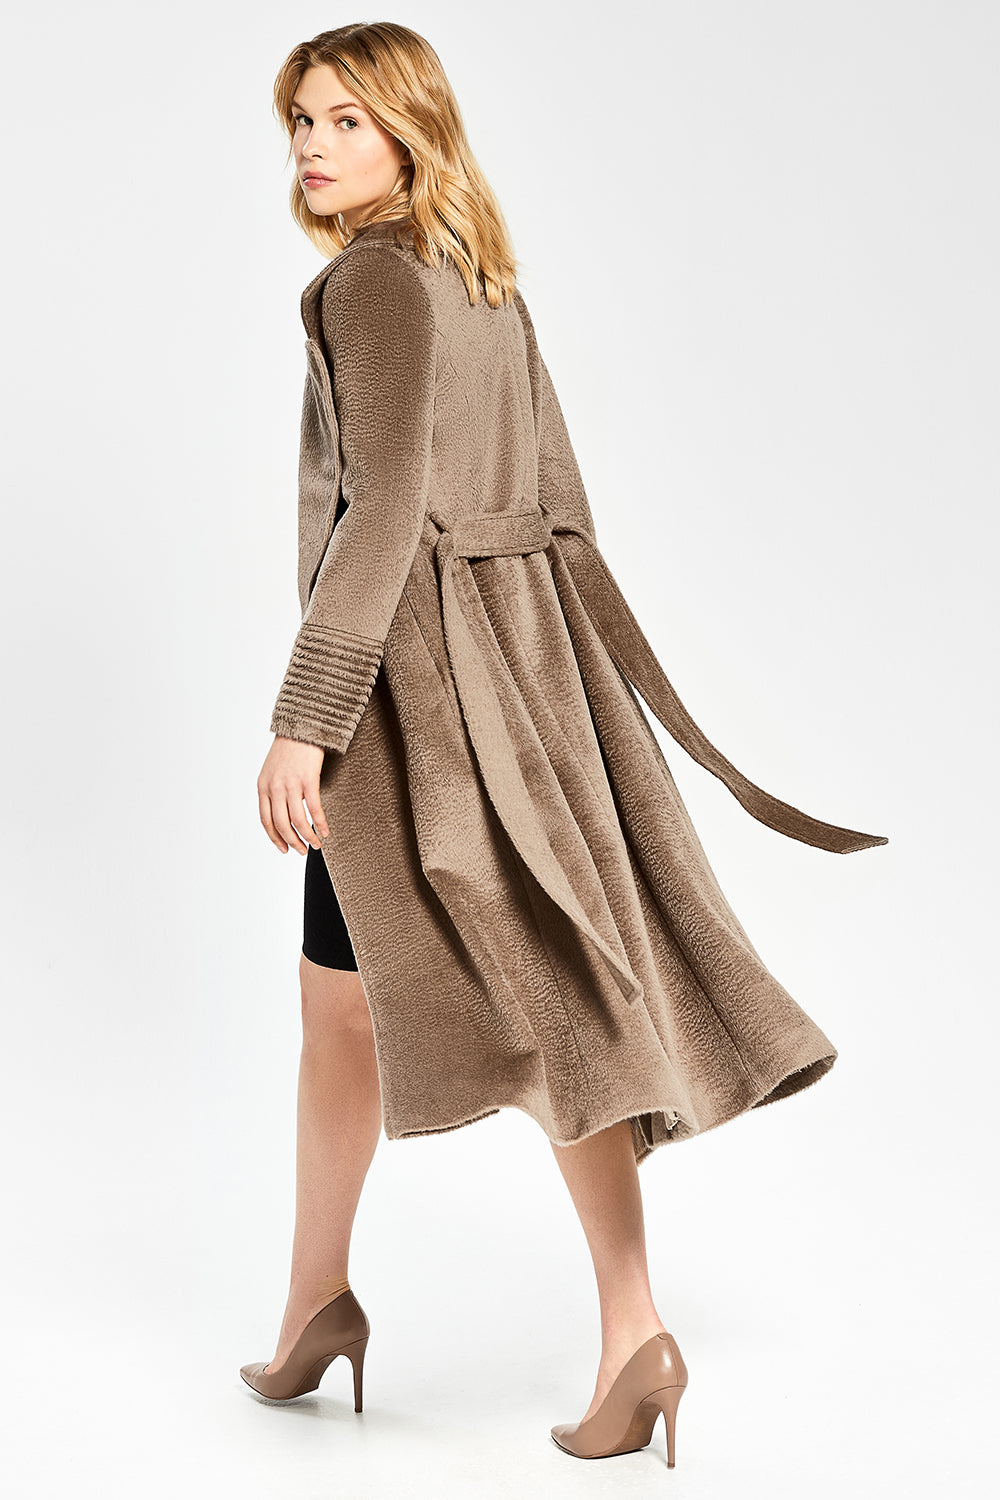 Sentaler Suri Alpaca Long Notched Collar Wrap Coat featured in Suri Alpaca and available in Hazelnut. Seen in action.